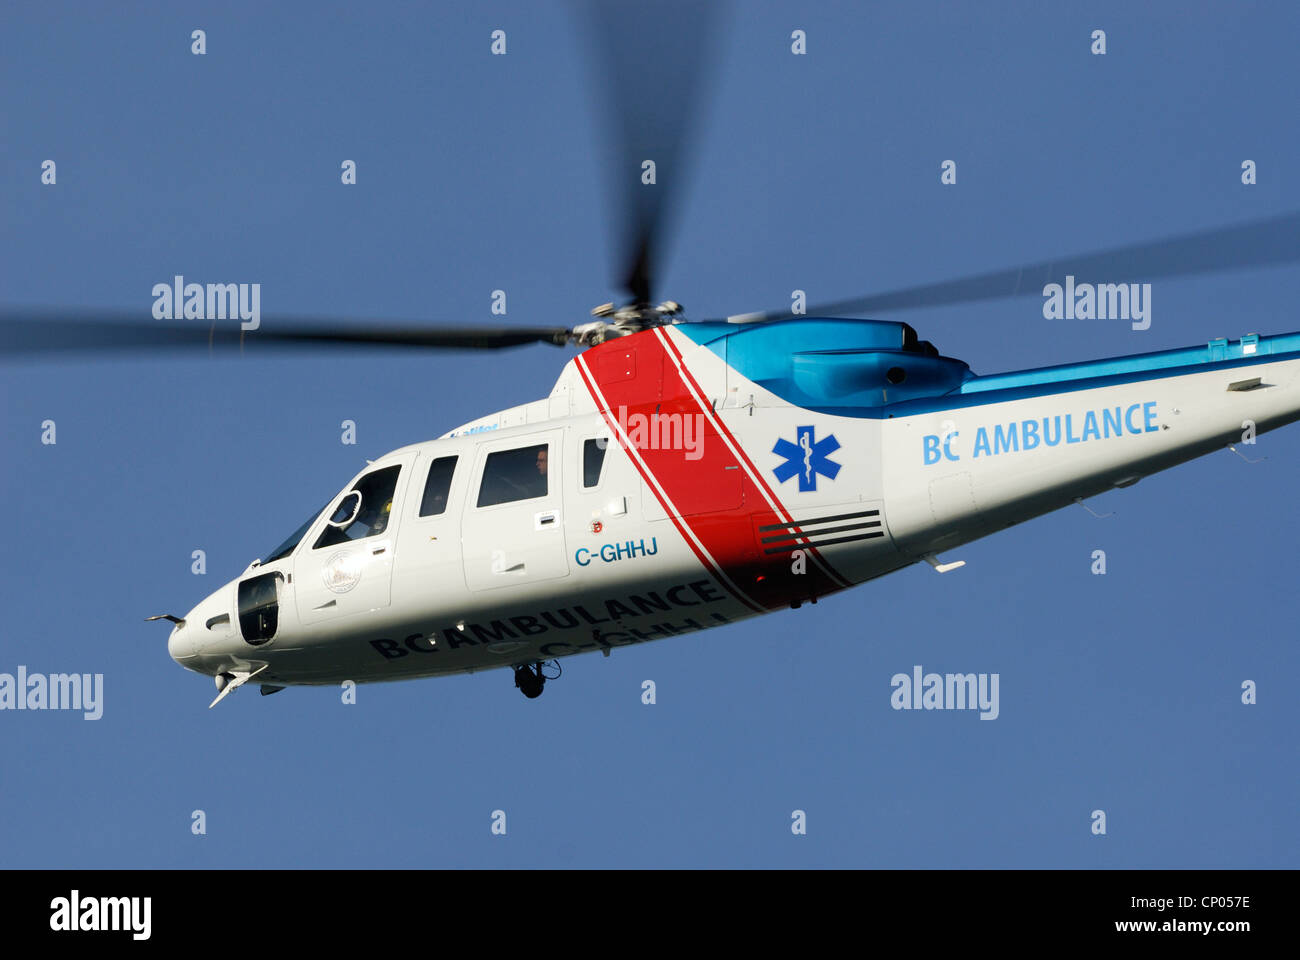 Sikorsky S-76 Twin-turbo-shaft air ambulance helicopter. Stock Photo